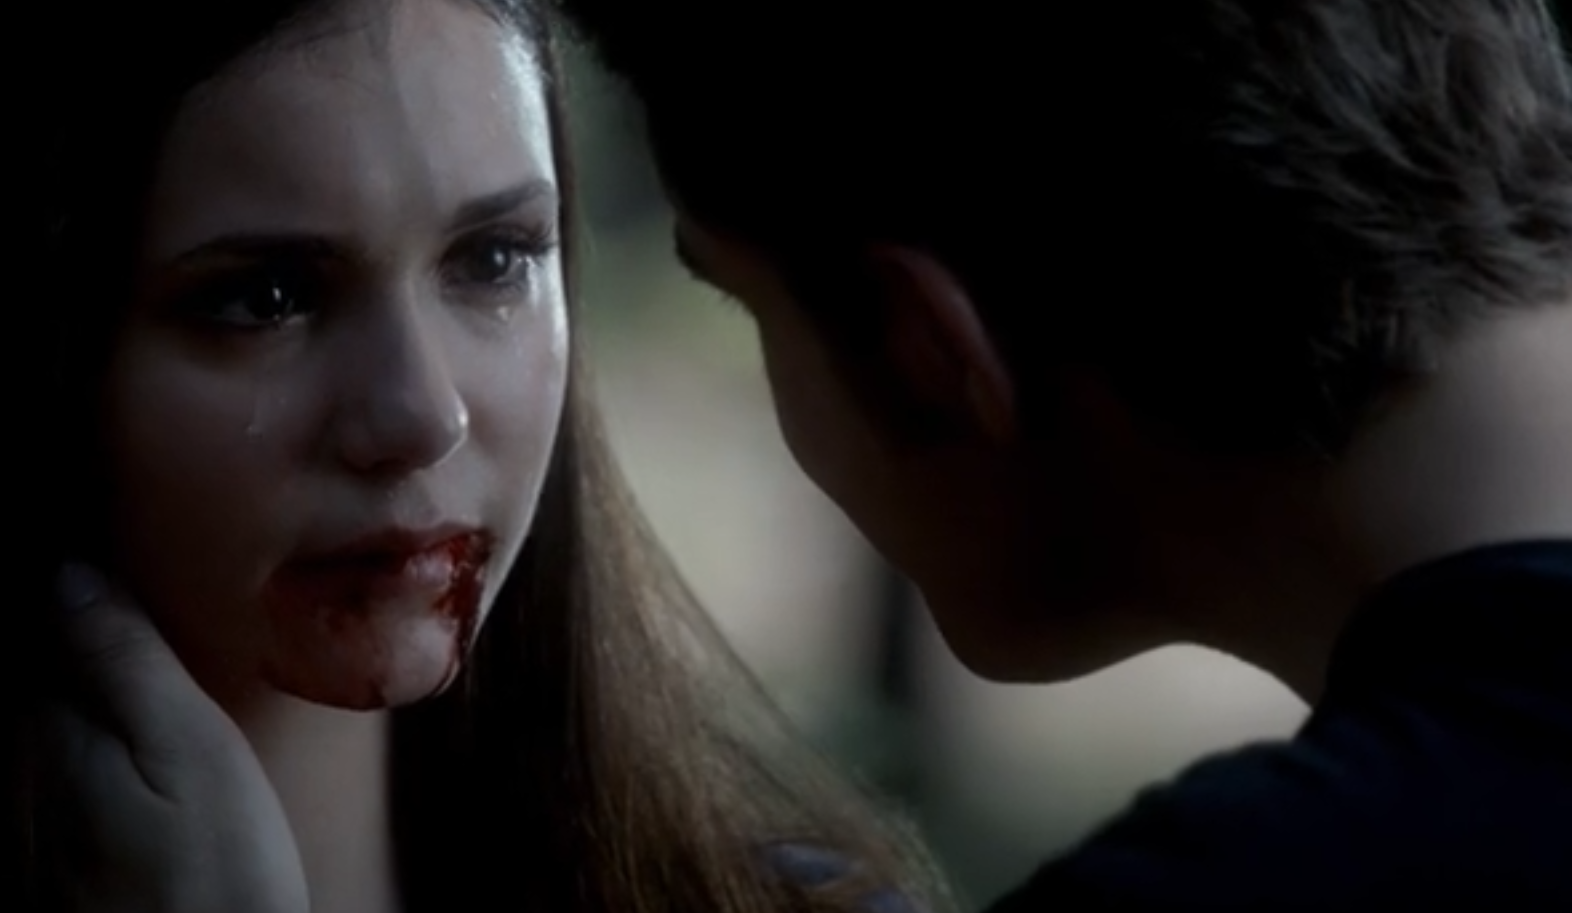 The Vampire diaries S04E02 - Elena feeds with Stefan